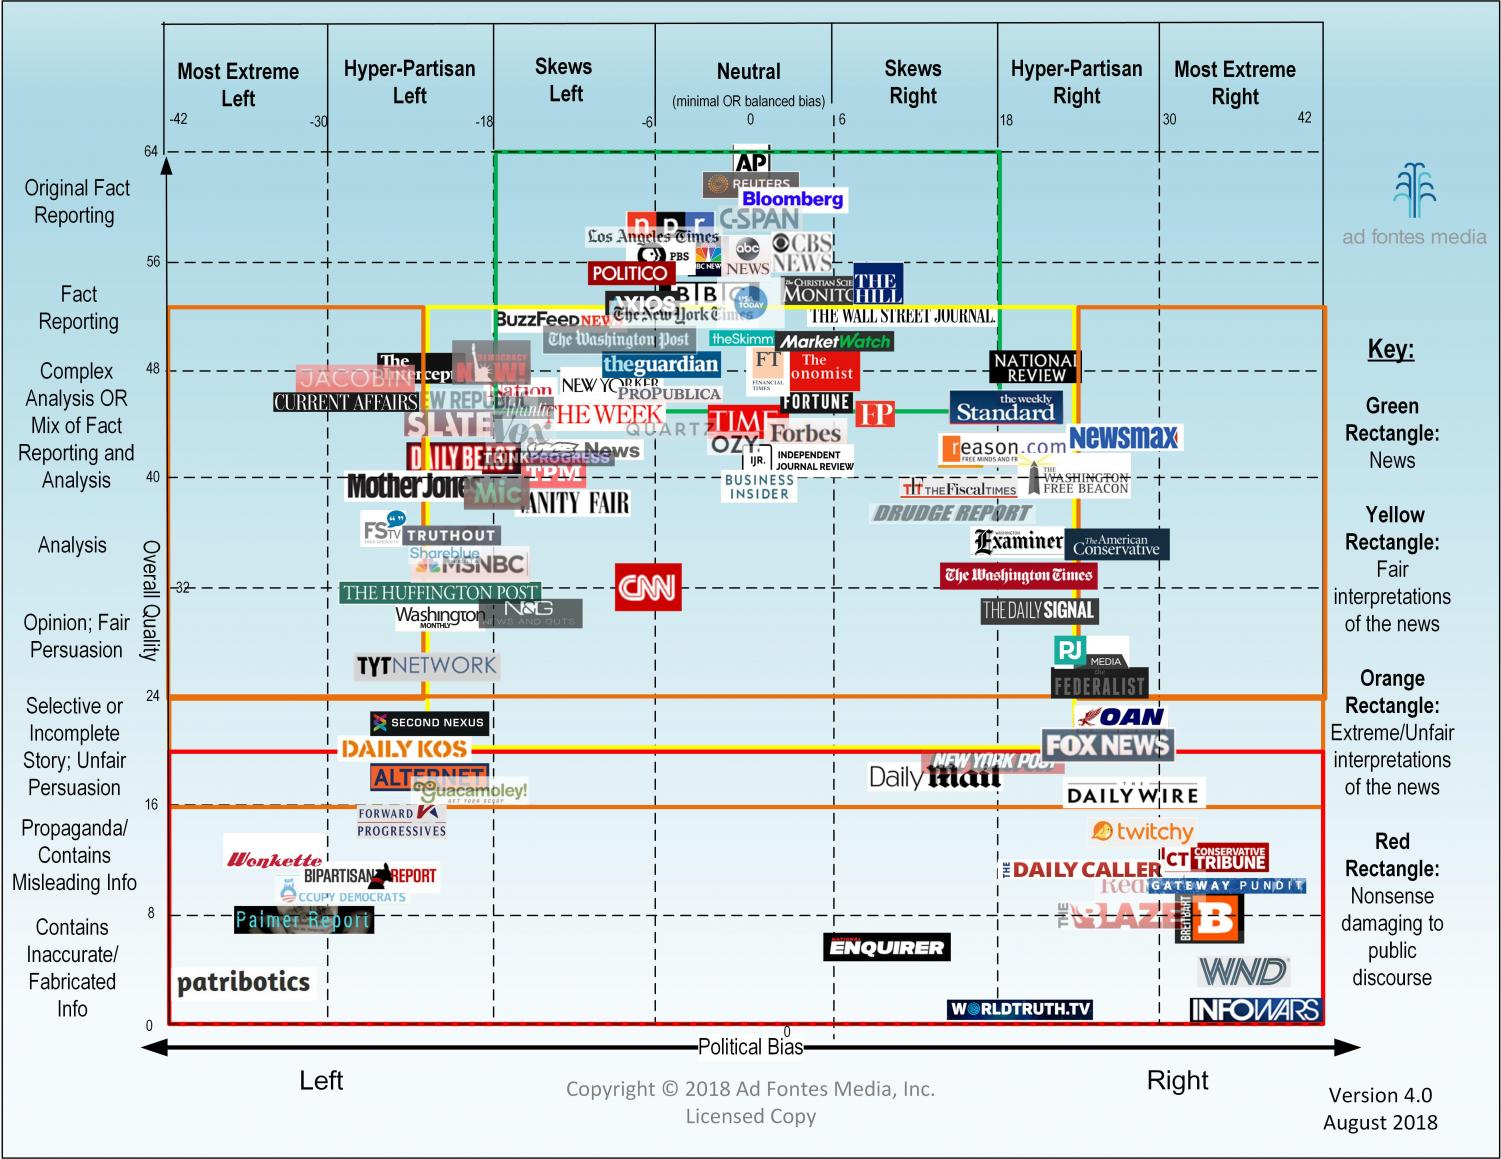 This media bias chart created by Ad Fontes Media shows the quality of news, on the vertical axis, and bias, on the horizontal axis.